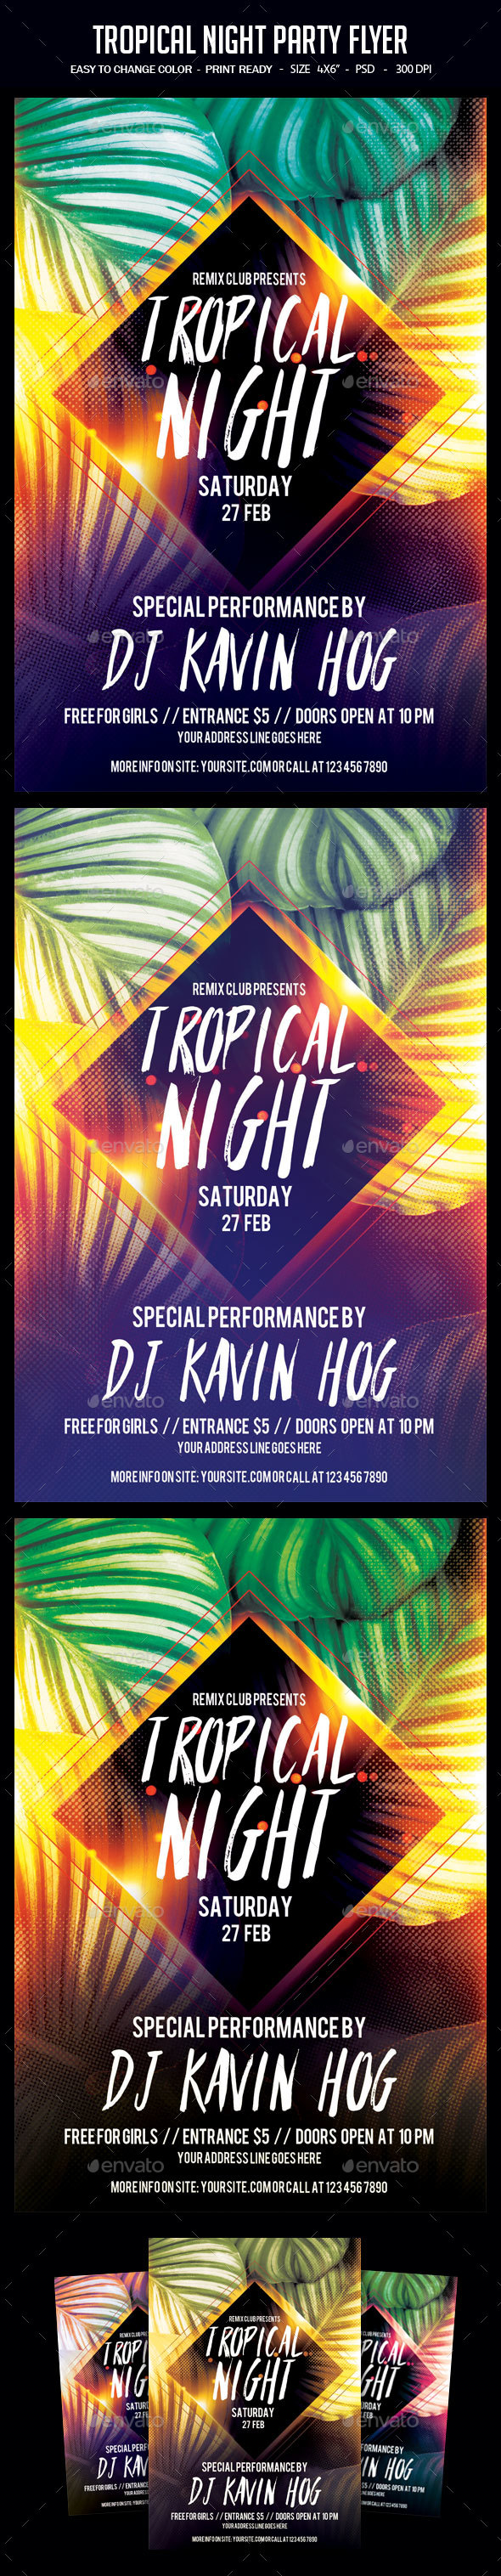 Tropical Night Party Flyer - Clubs & Parties Events